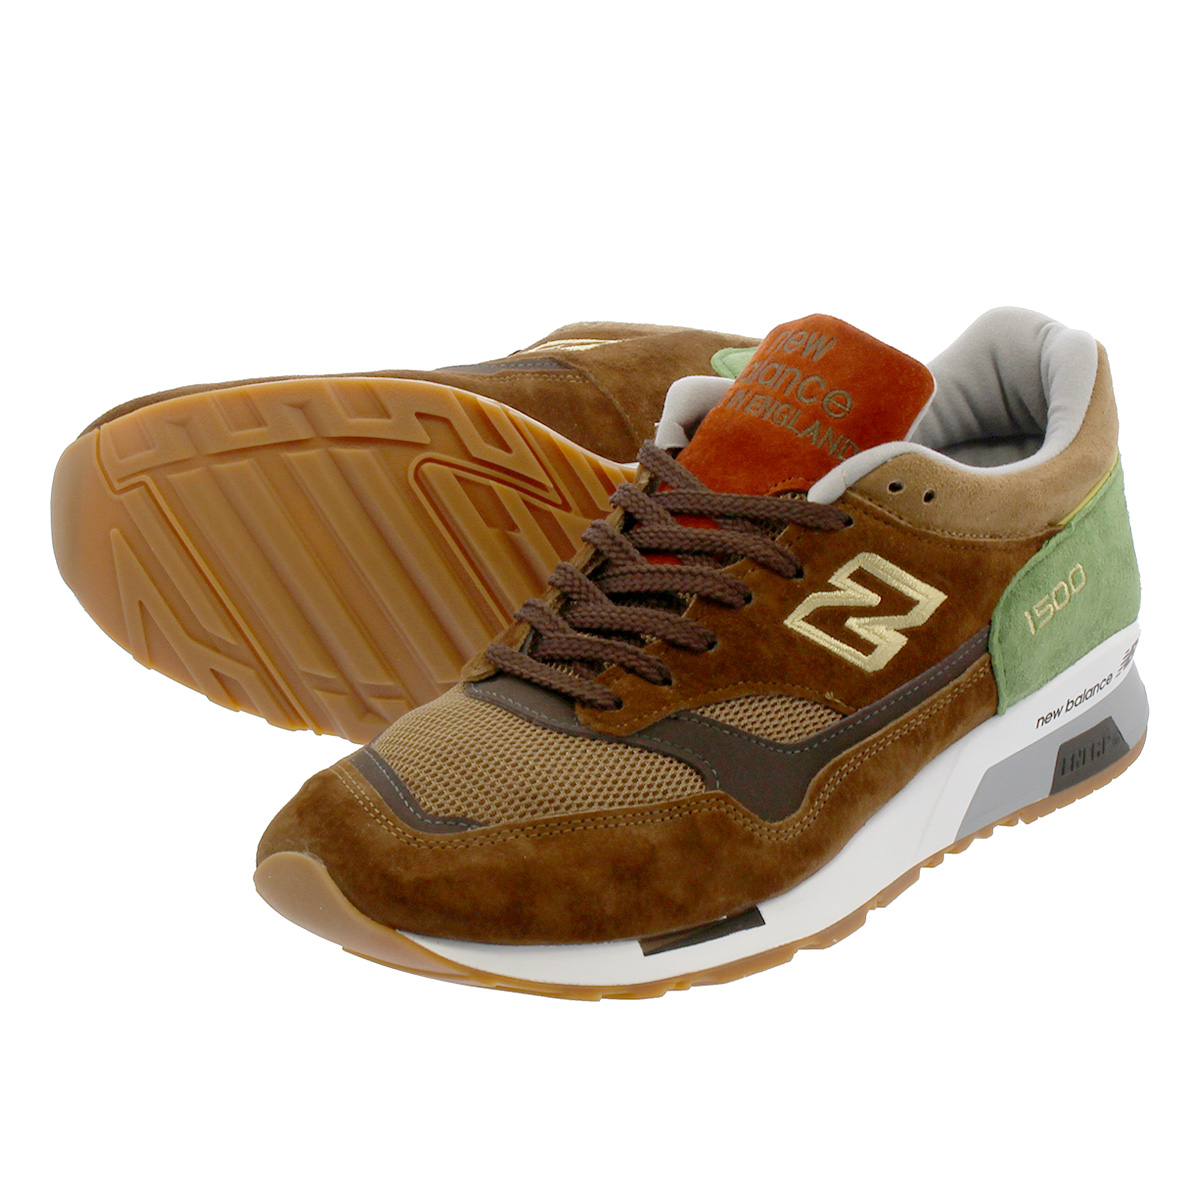 NEW BALANCE M1500LN 【Made in England】 ニューバランス M1500LN BROWN